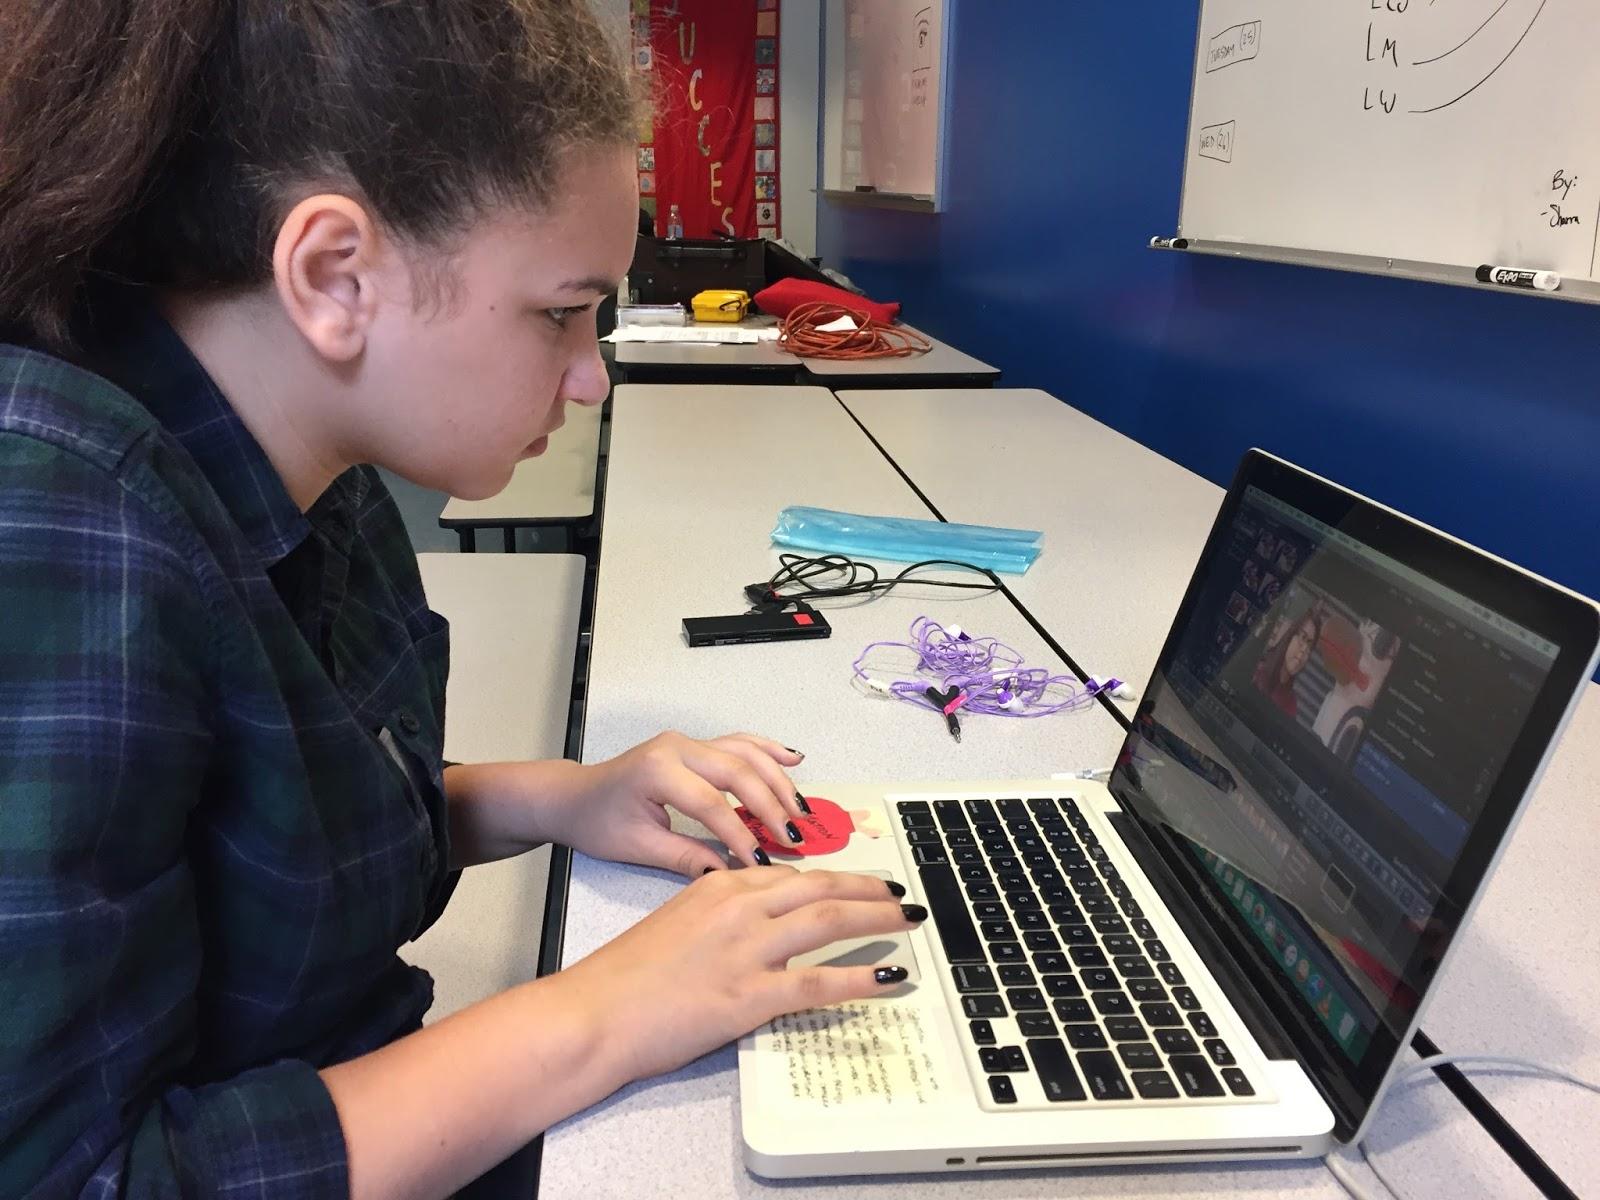 Jacey is quick to learn the editing program and adds titles and voices to the rough assembly of their documentary